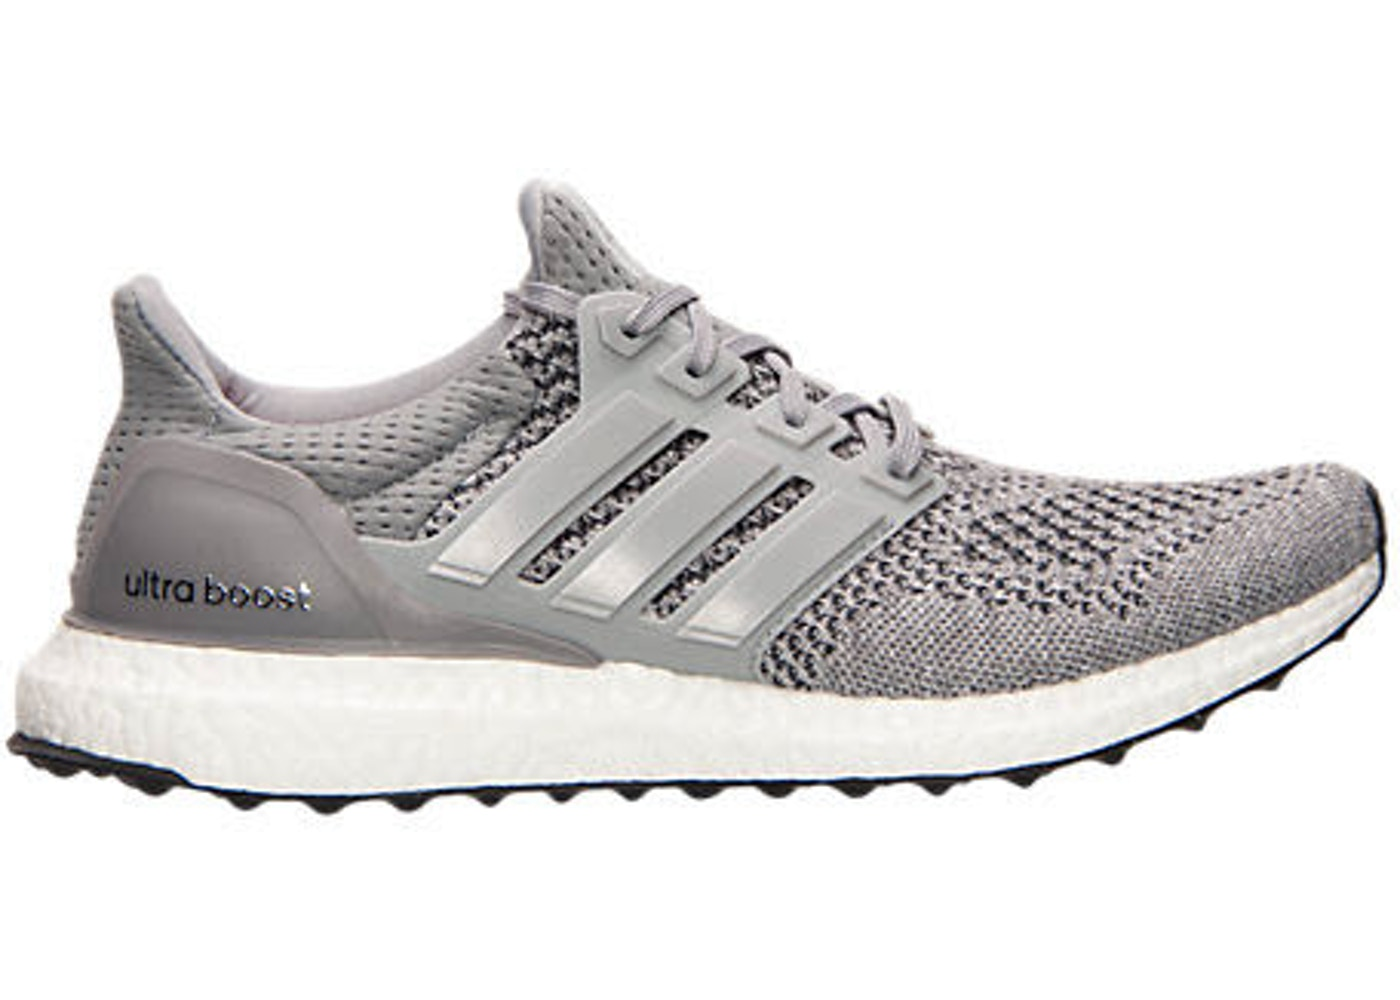 354a12a23 adidas Ultra Boost 1.0 Wool Grey - S77510